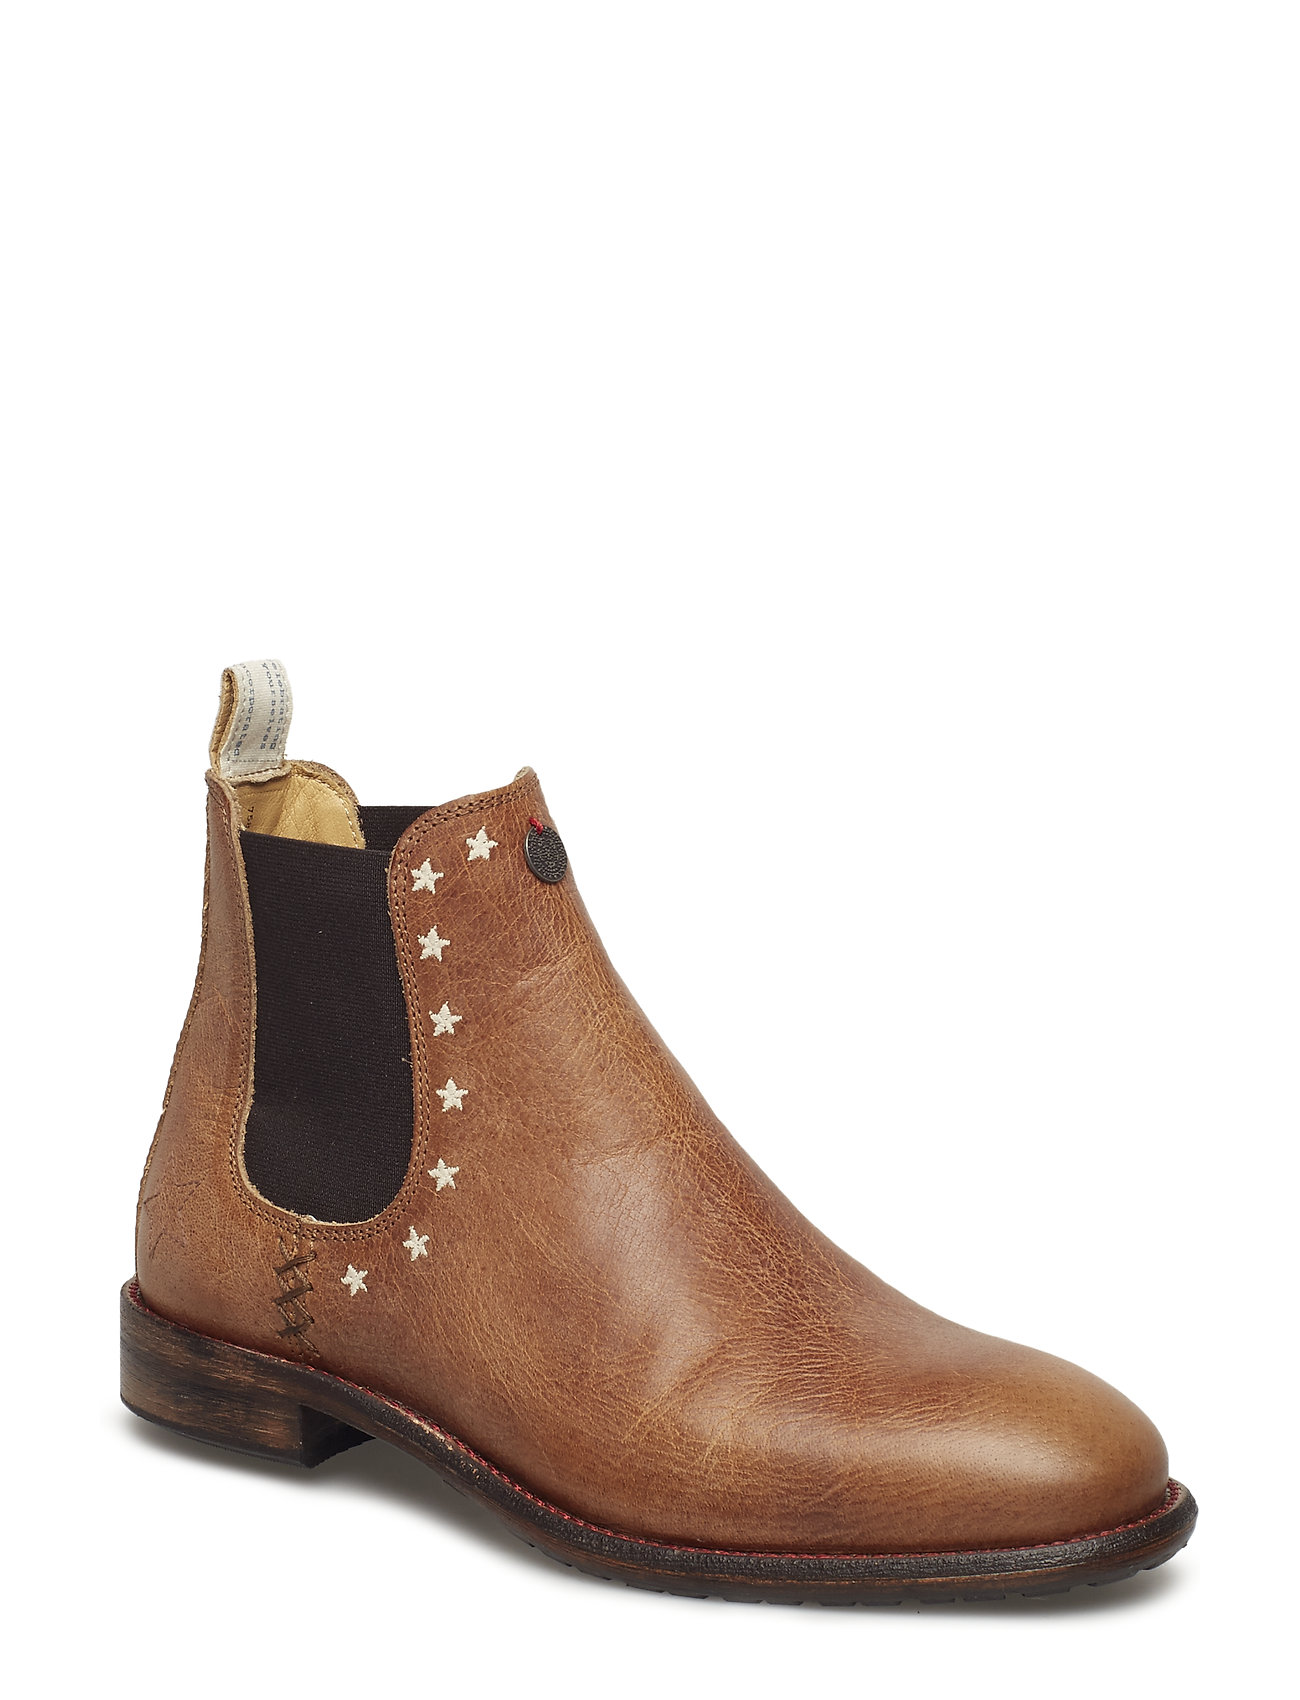 ODD MOLLY mollyhood low leather boot